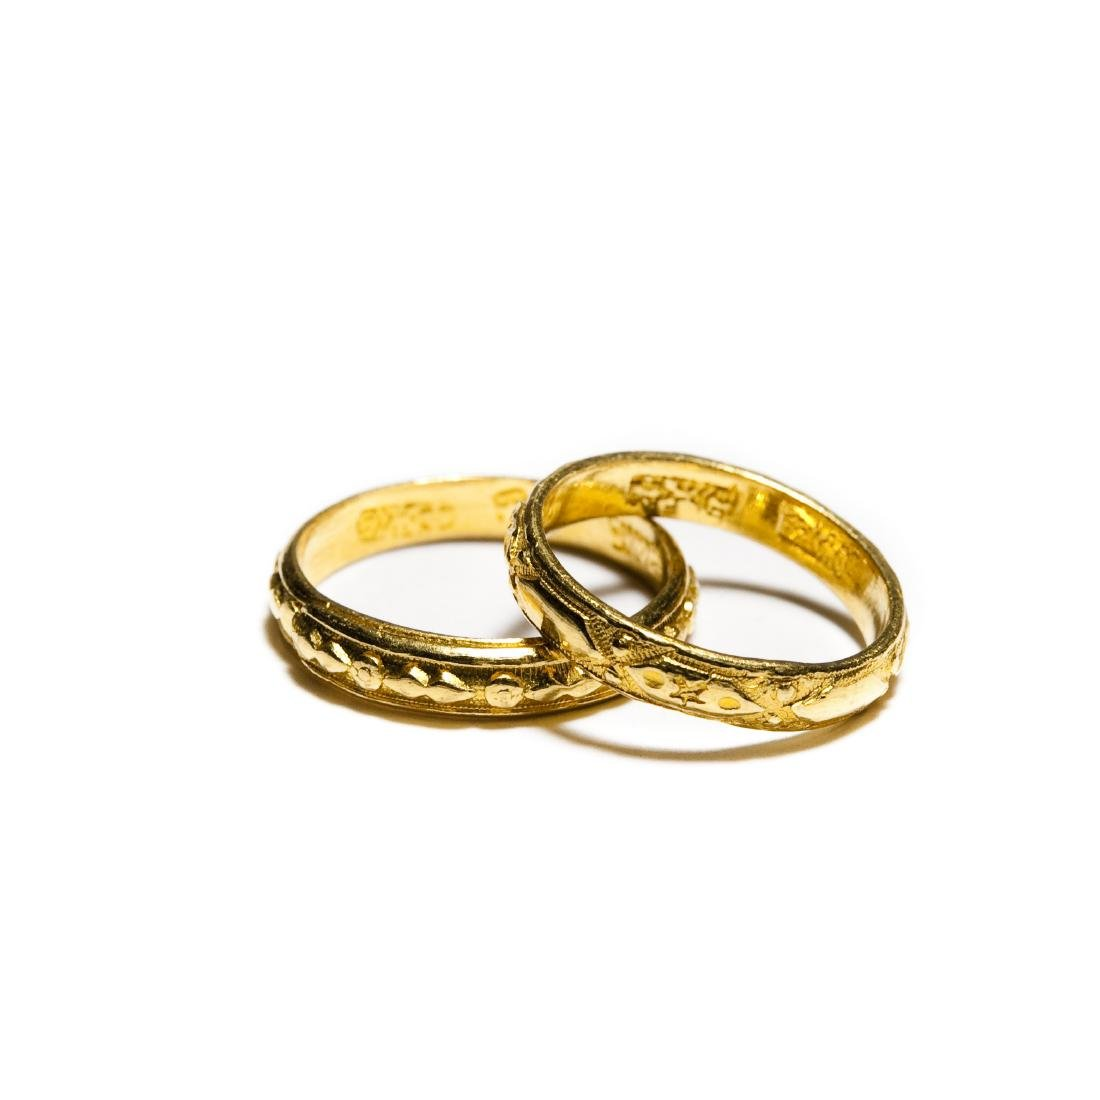 (2) Chinese Gold Bands.